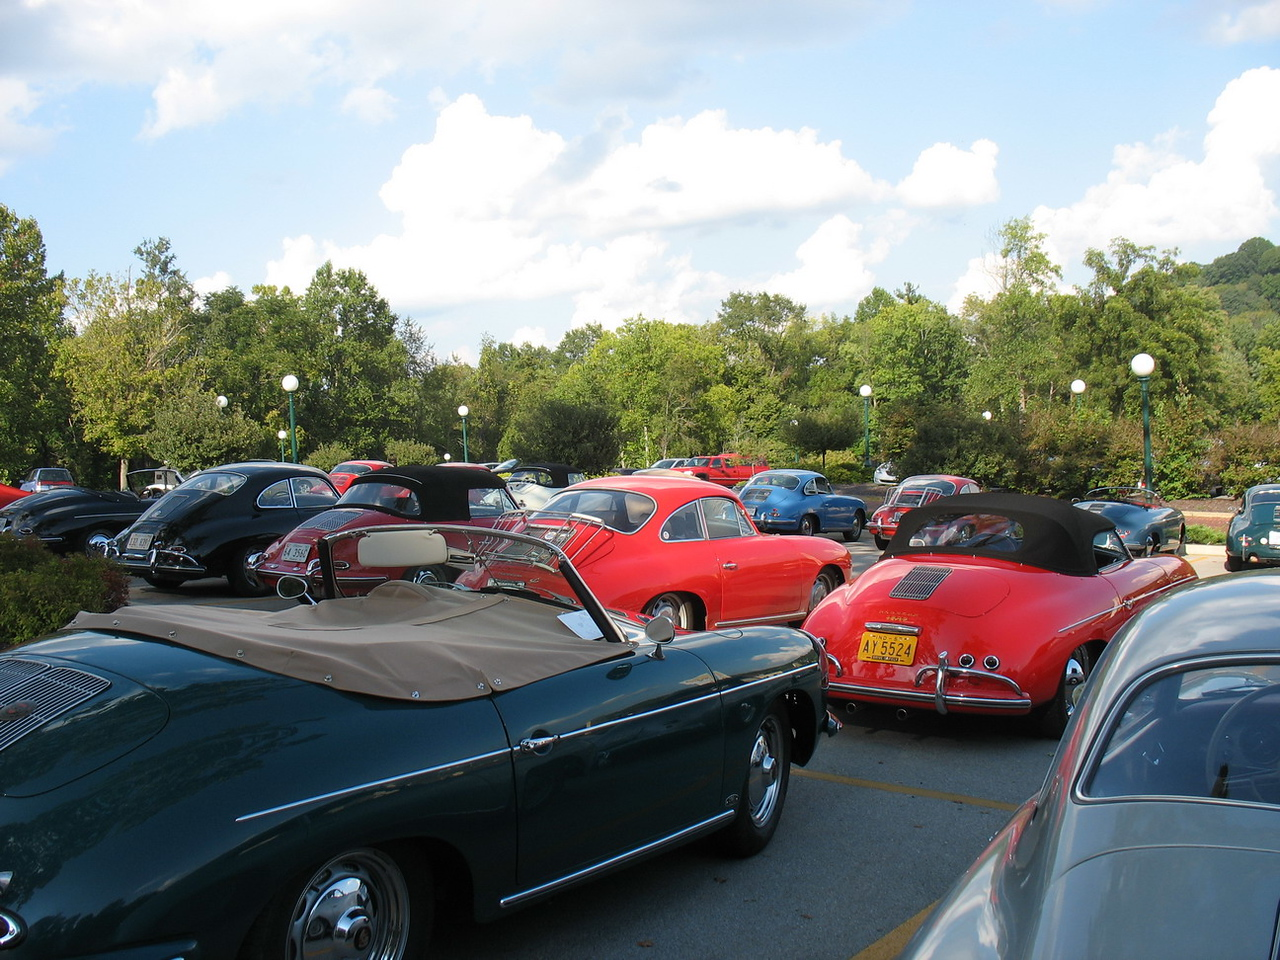 A view of 356s in the parking lot.